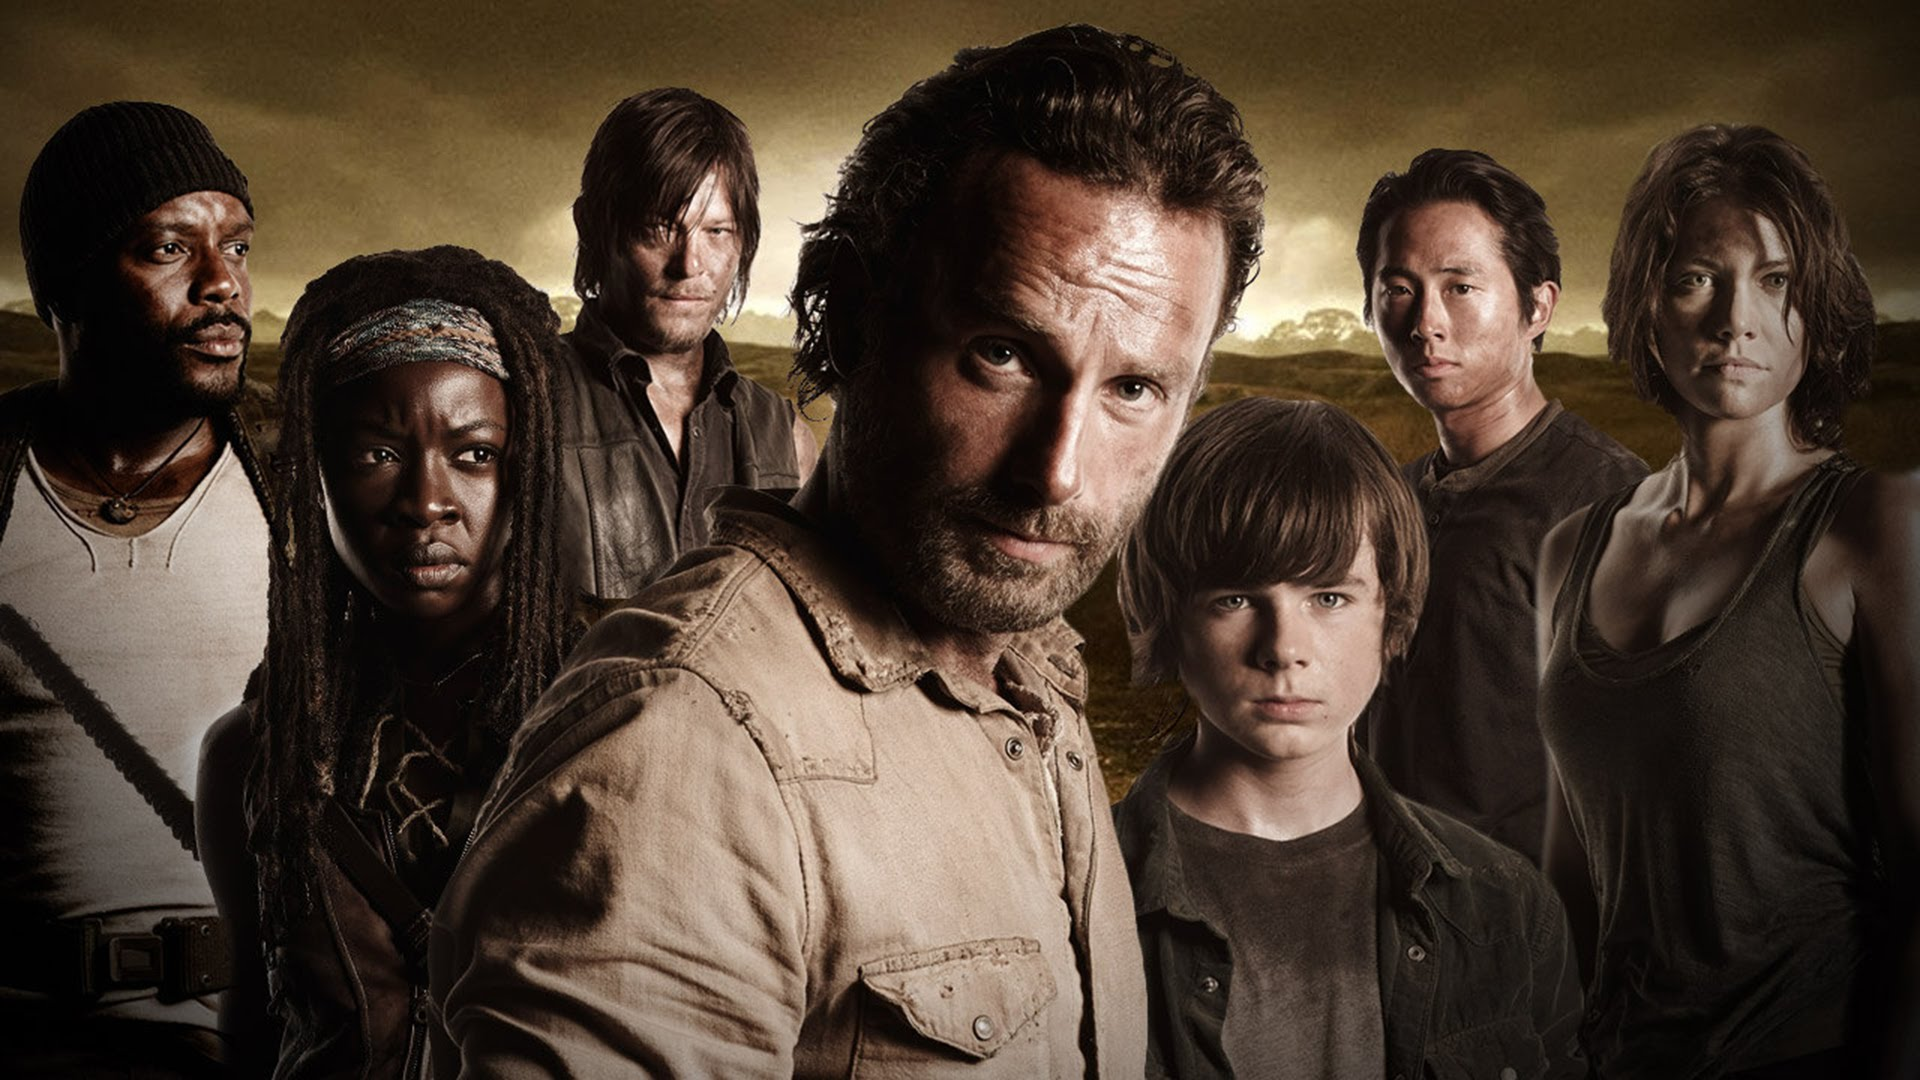 Main Cast Of The Walking Dead Hd Wallpaper Background Image